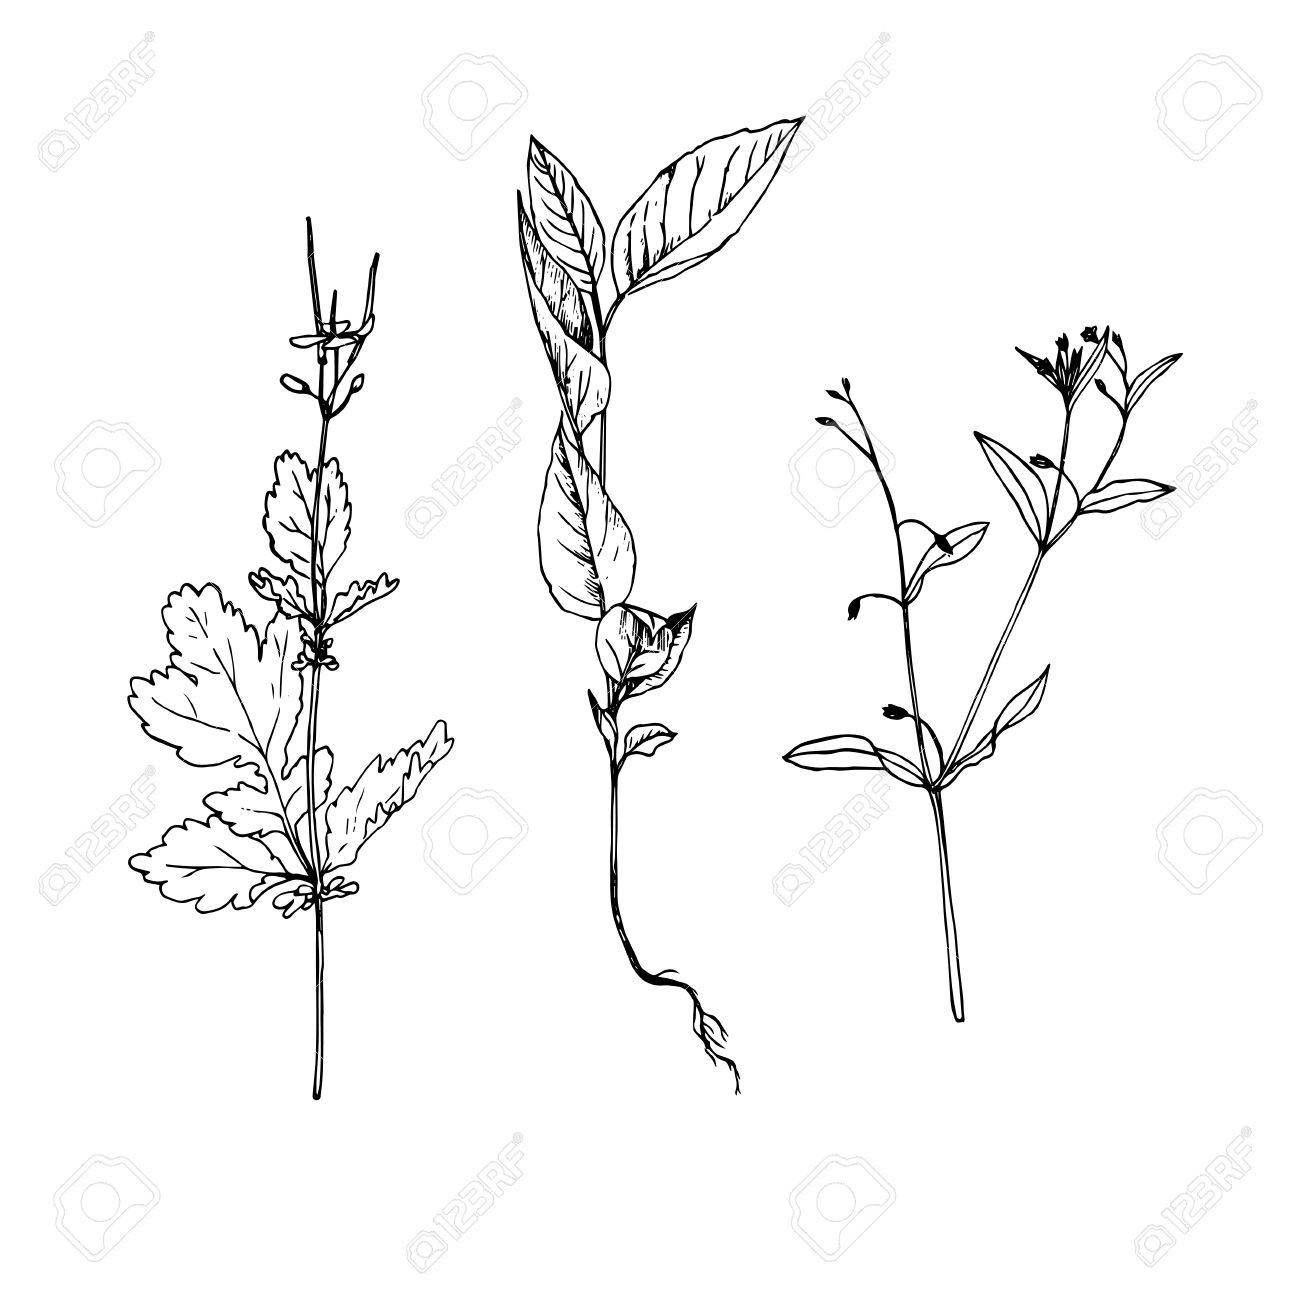 1300x1300 Set Of Ink Drawing Wild Flowers With Leaves, Line Drawing Wild